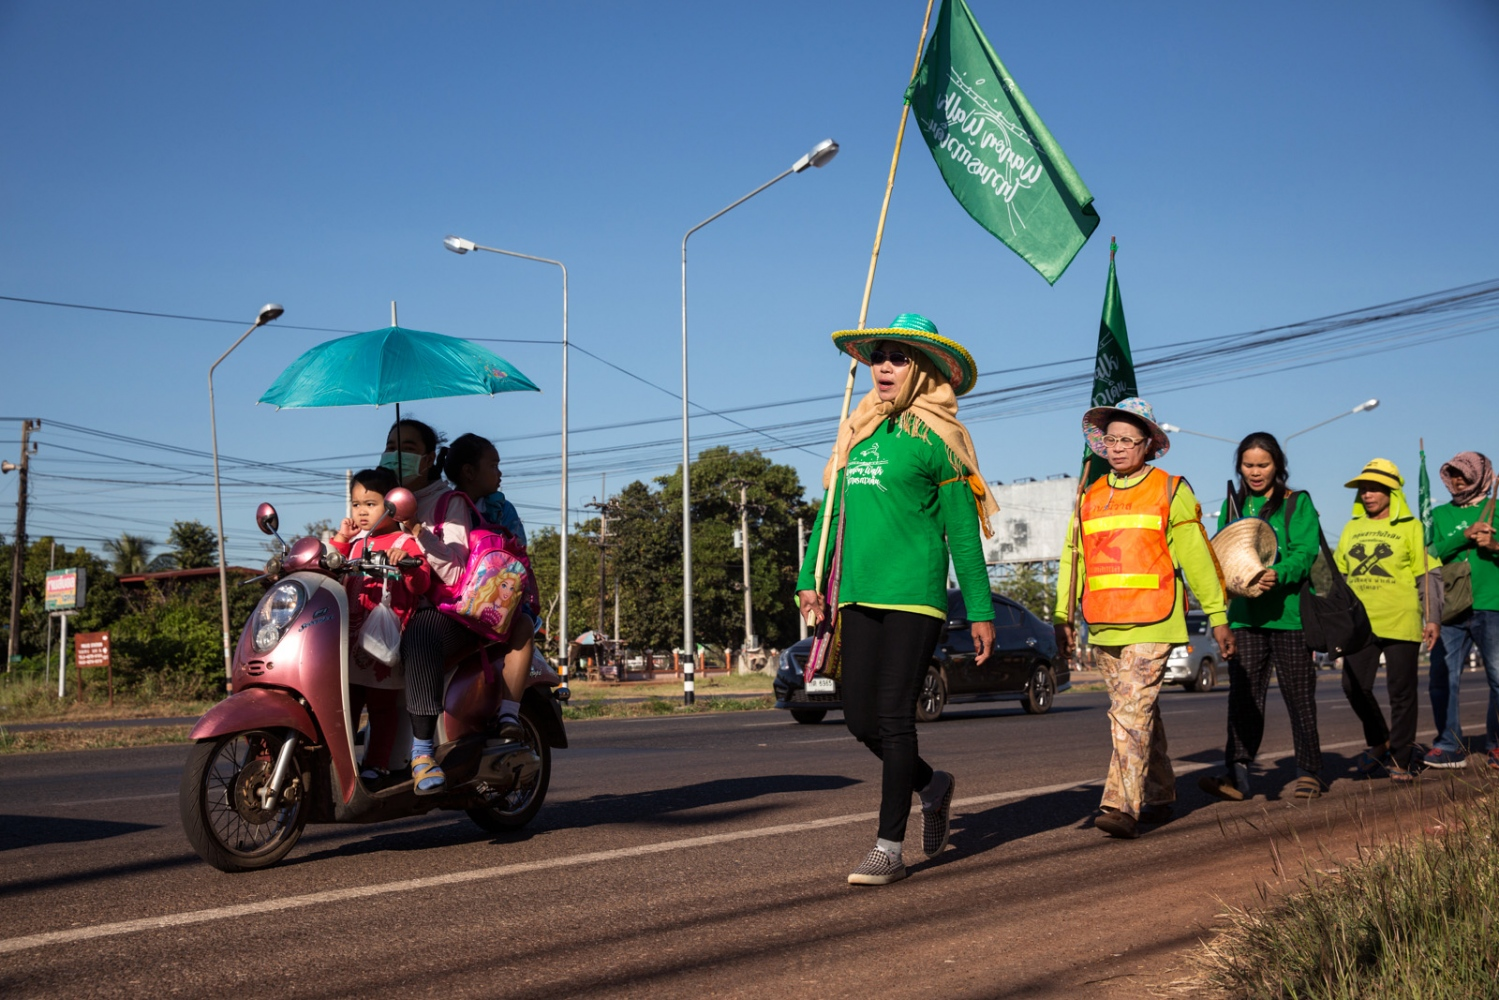 Mae Mali, a core-leader, leads the potash mining protest walk on day 5 on their way to the provincial capital.